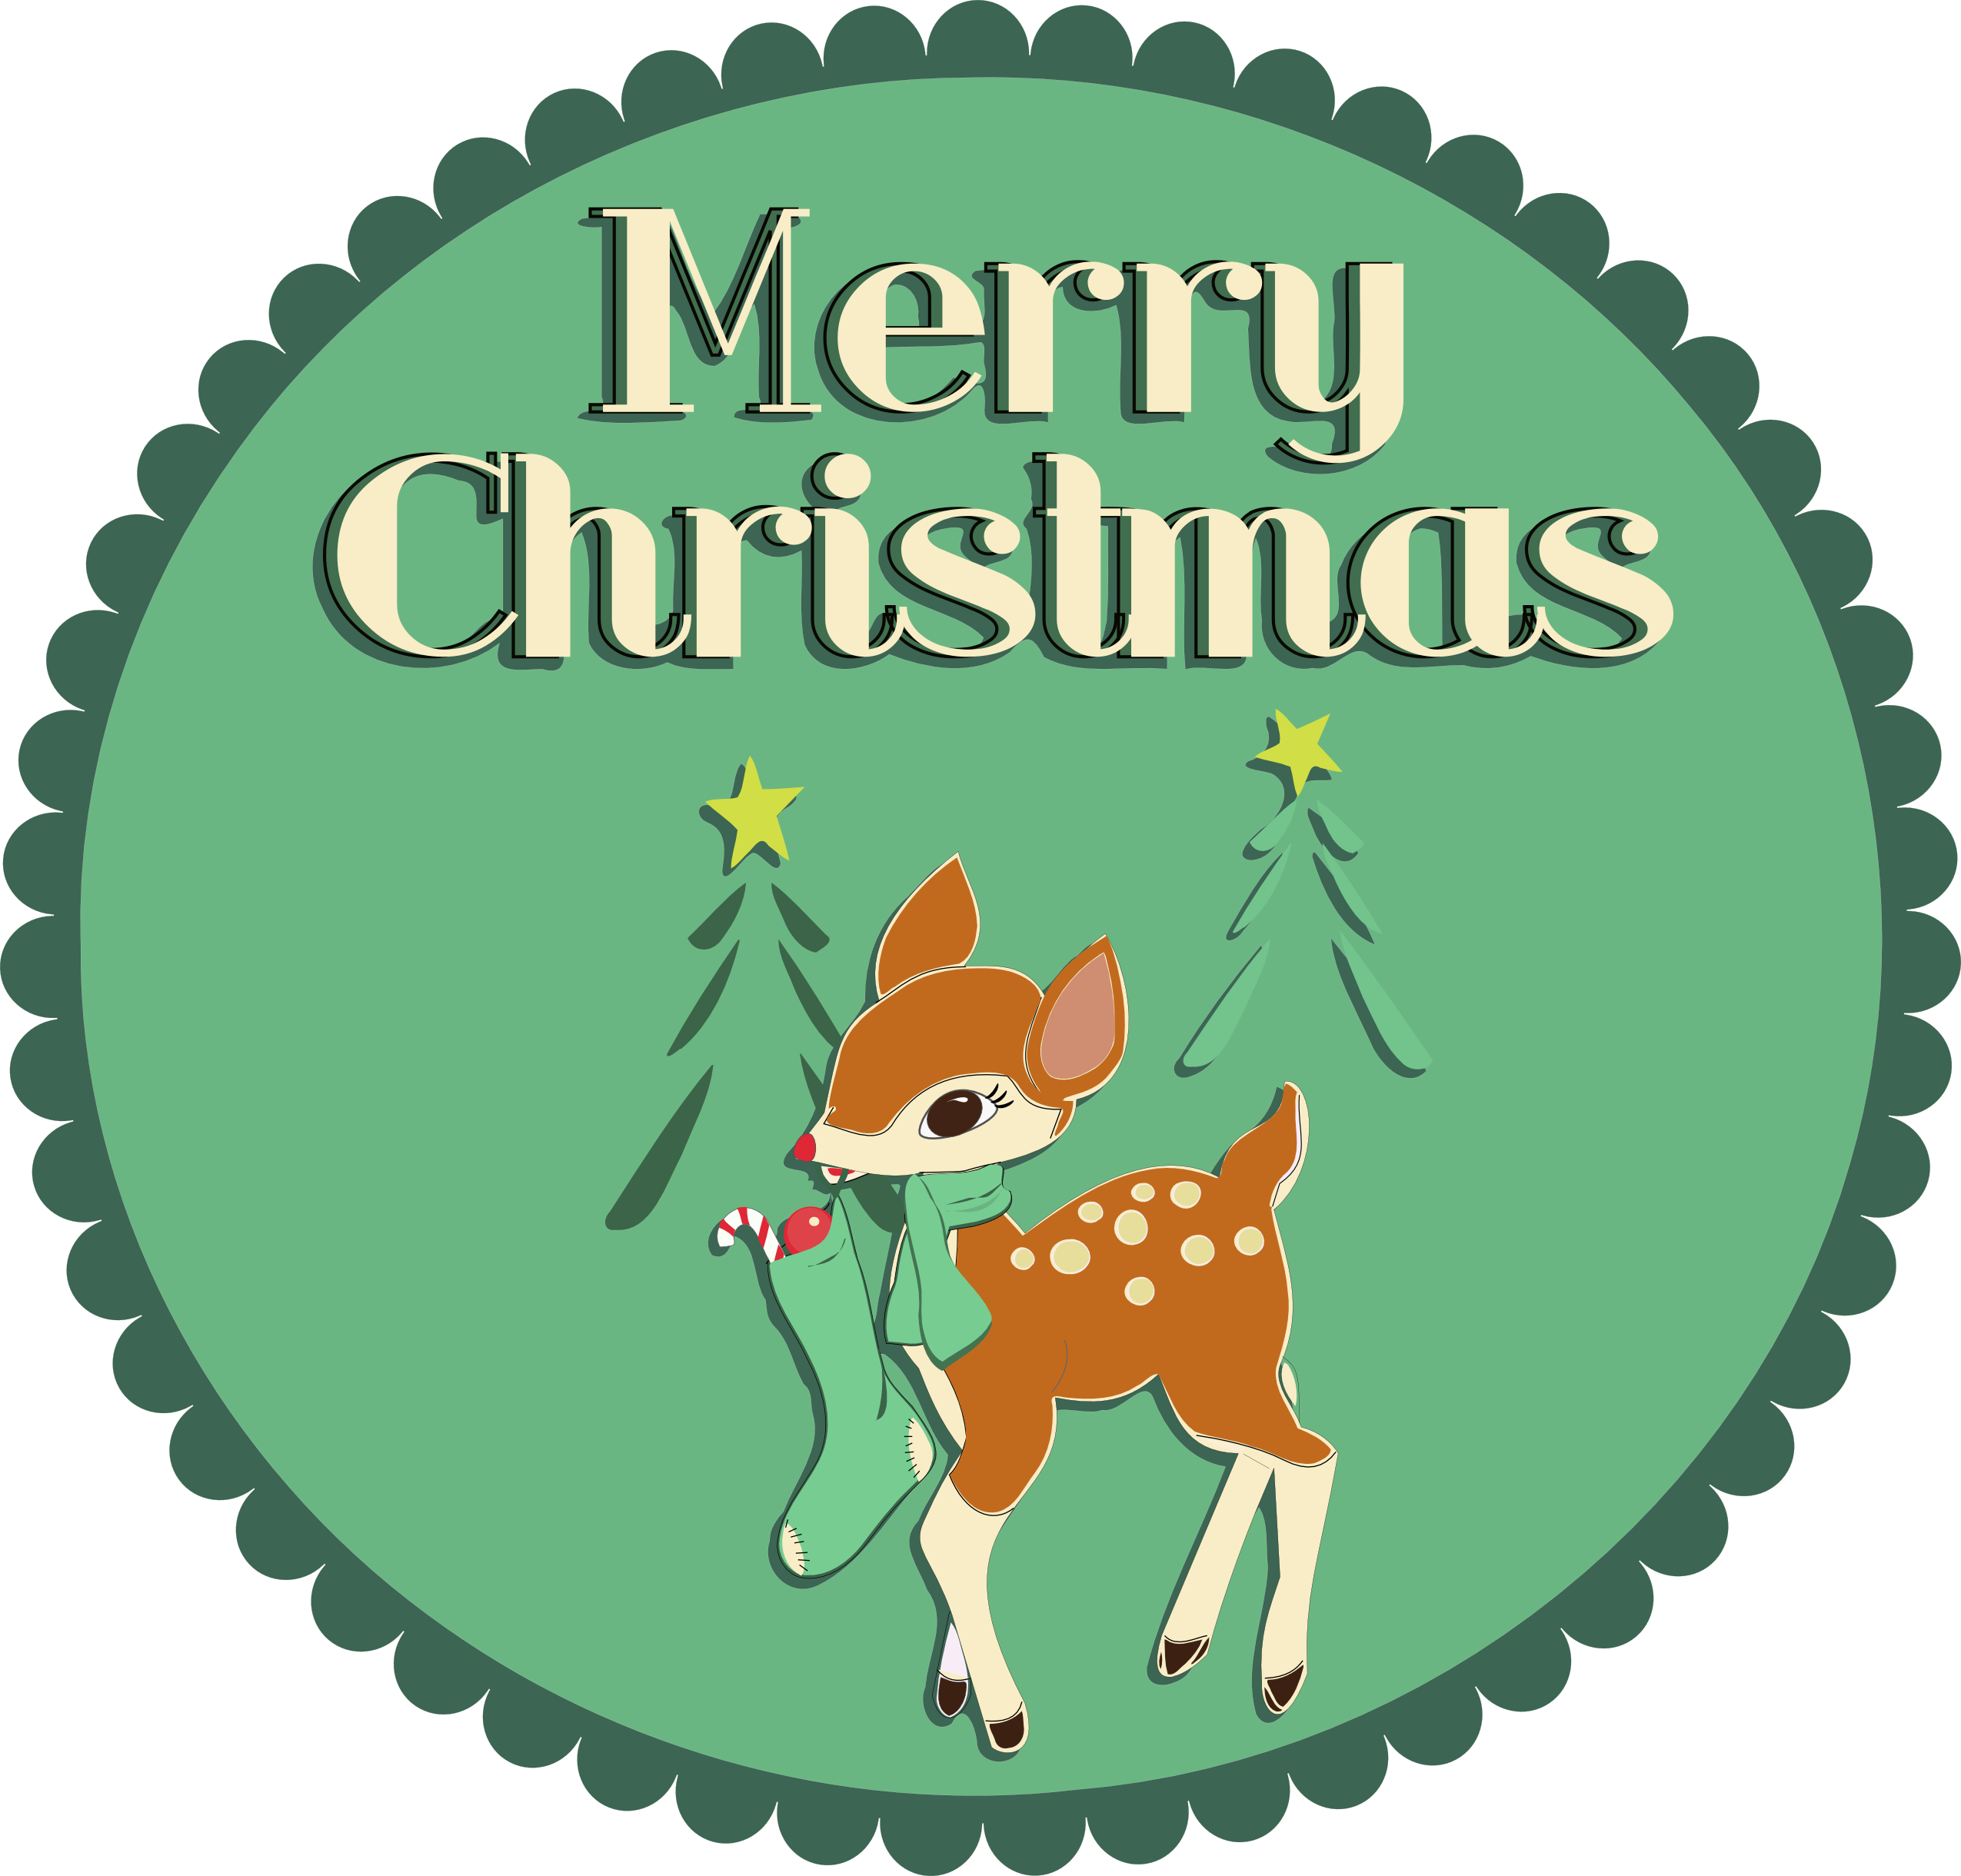 Free Christmas Svg.Free Christmas Svg Archives Eye Draw It